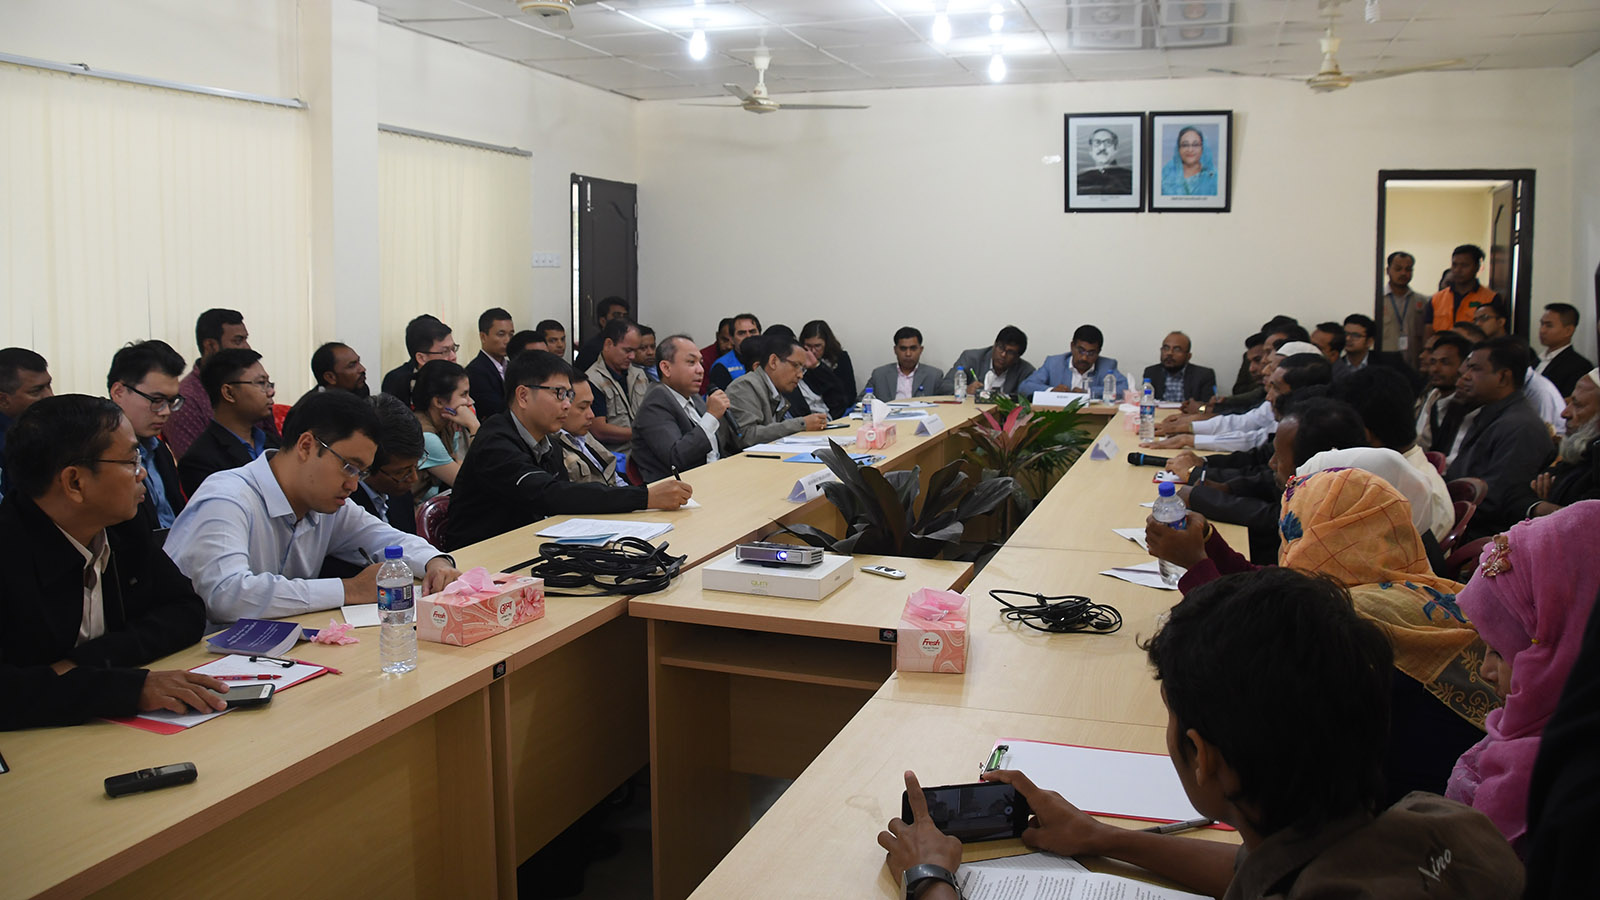 The Myanmar Delegation, accompanied by ASEAN-ERAT members, brief the displaced persons on the Government's efforts on repatriation process at the extension of Camp No 4 in Cox's Bazar.Photo: MNA